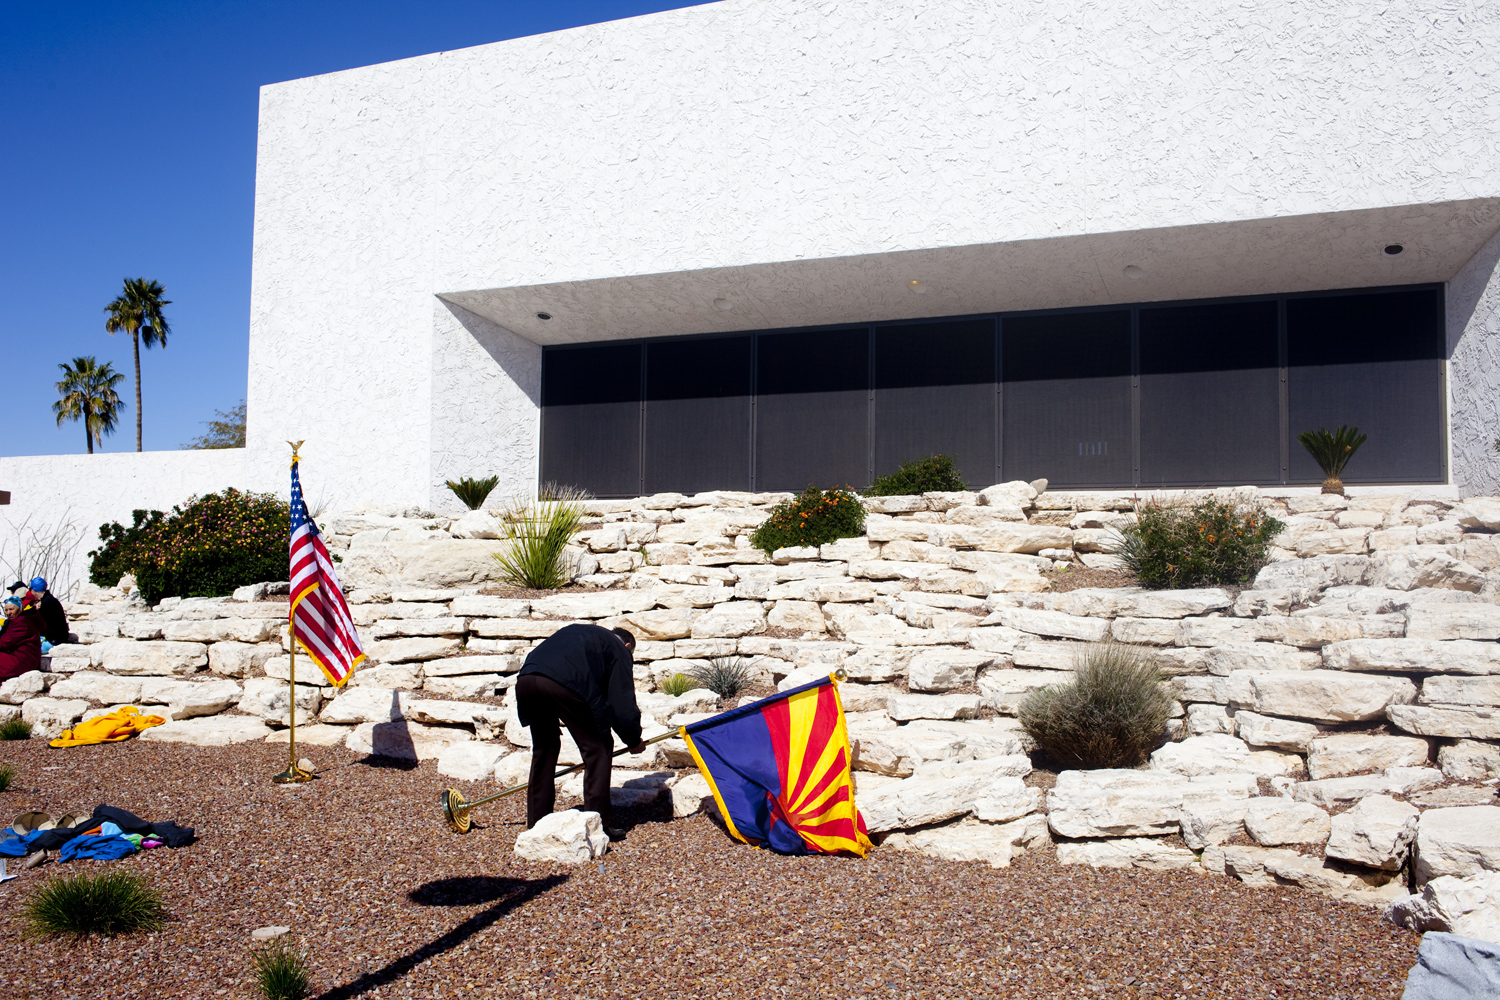 A resident raises the flag at the Bell Recreation Center pool in Sun City, Arizona March 14, 2010.